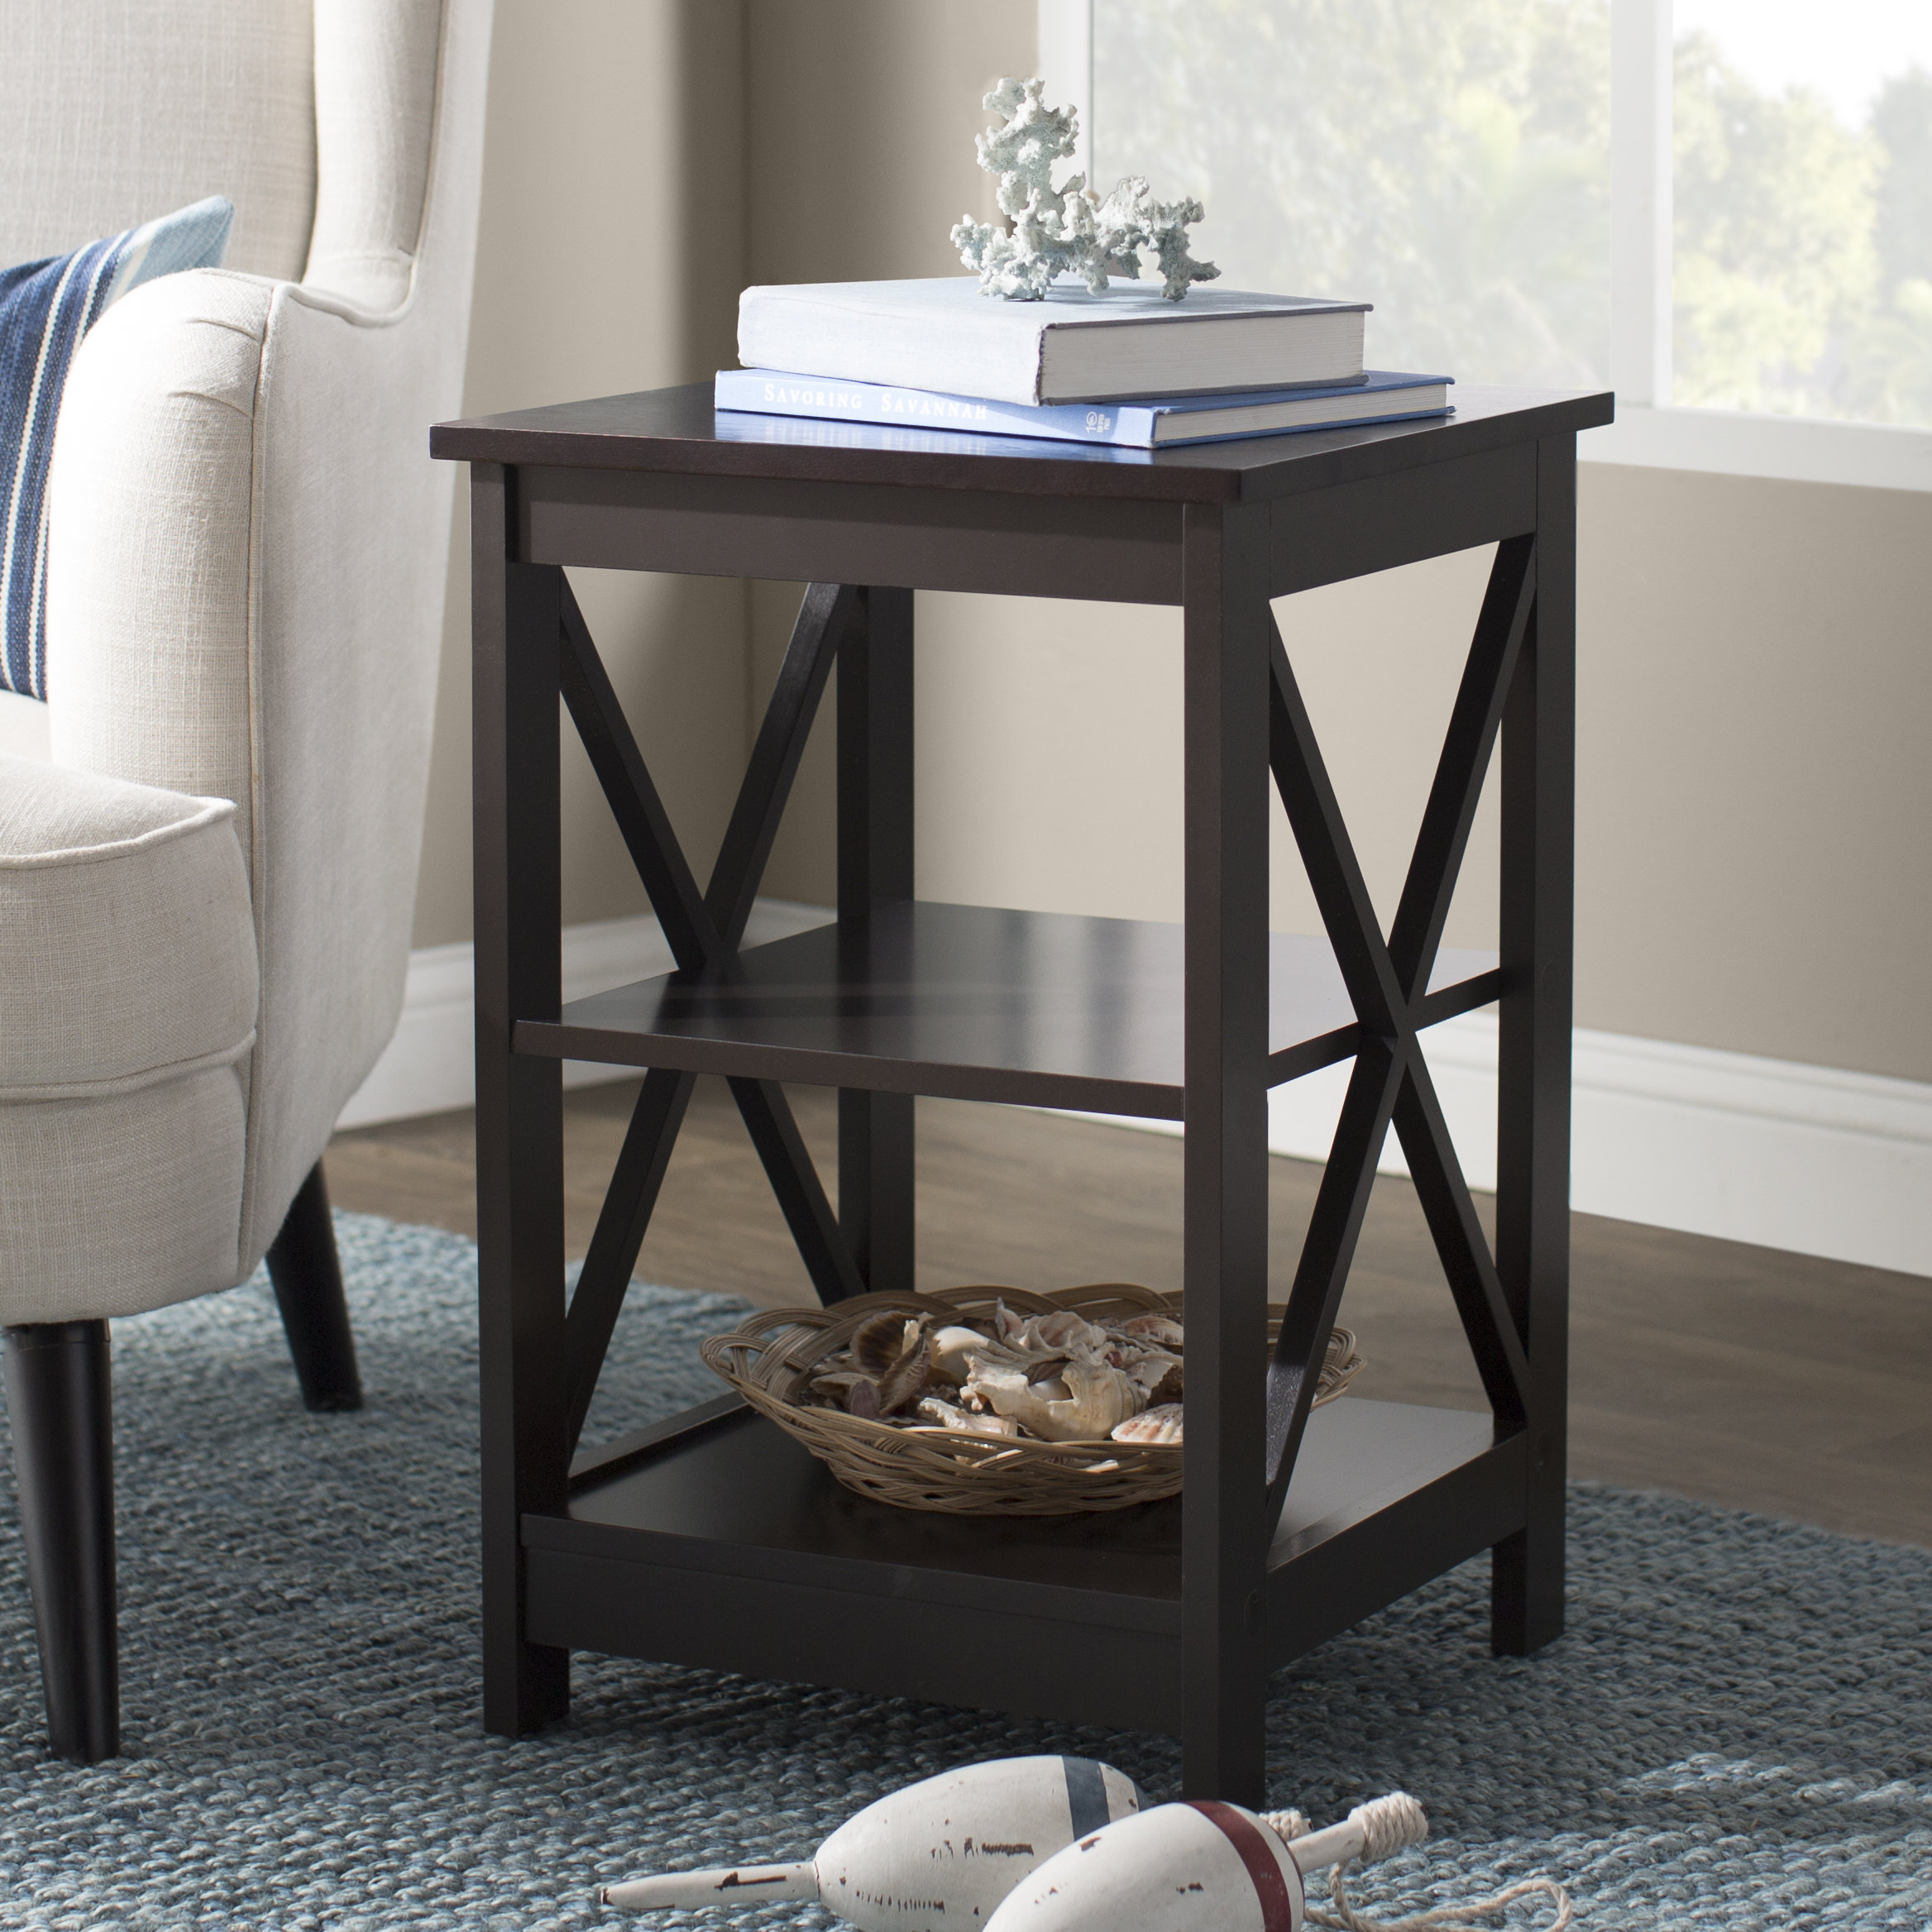 beachcrest home stoneford end table reviews room essentials storage accent wrought iron outdoor tables round tablecloth square mini light barn door construction concrete